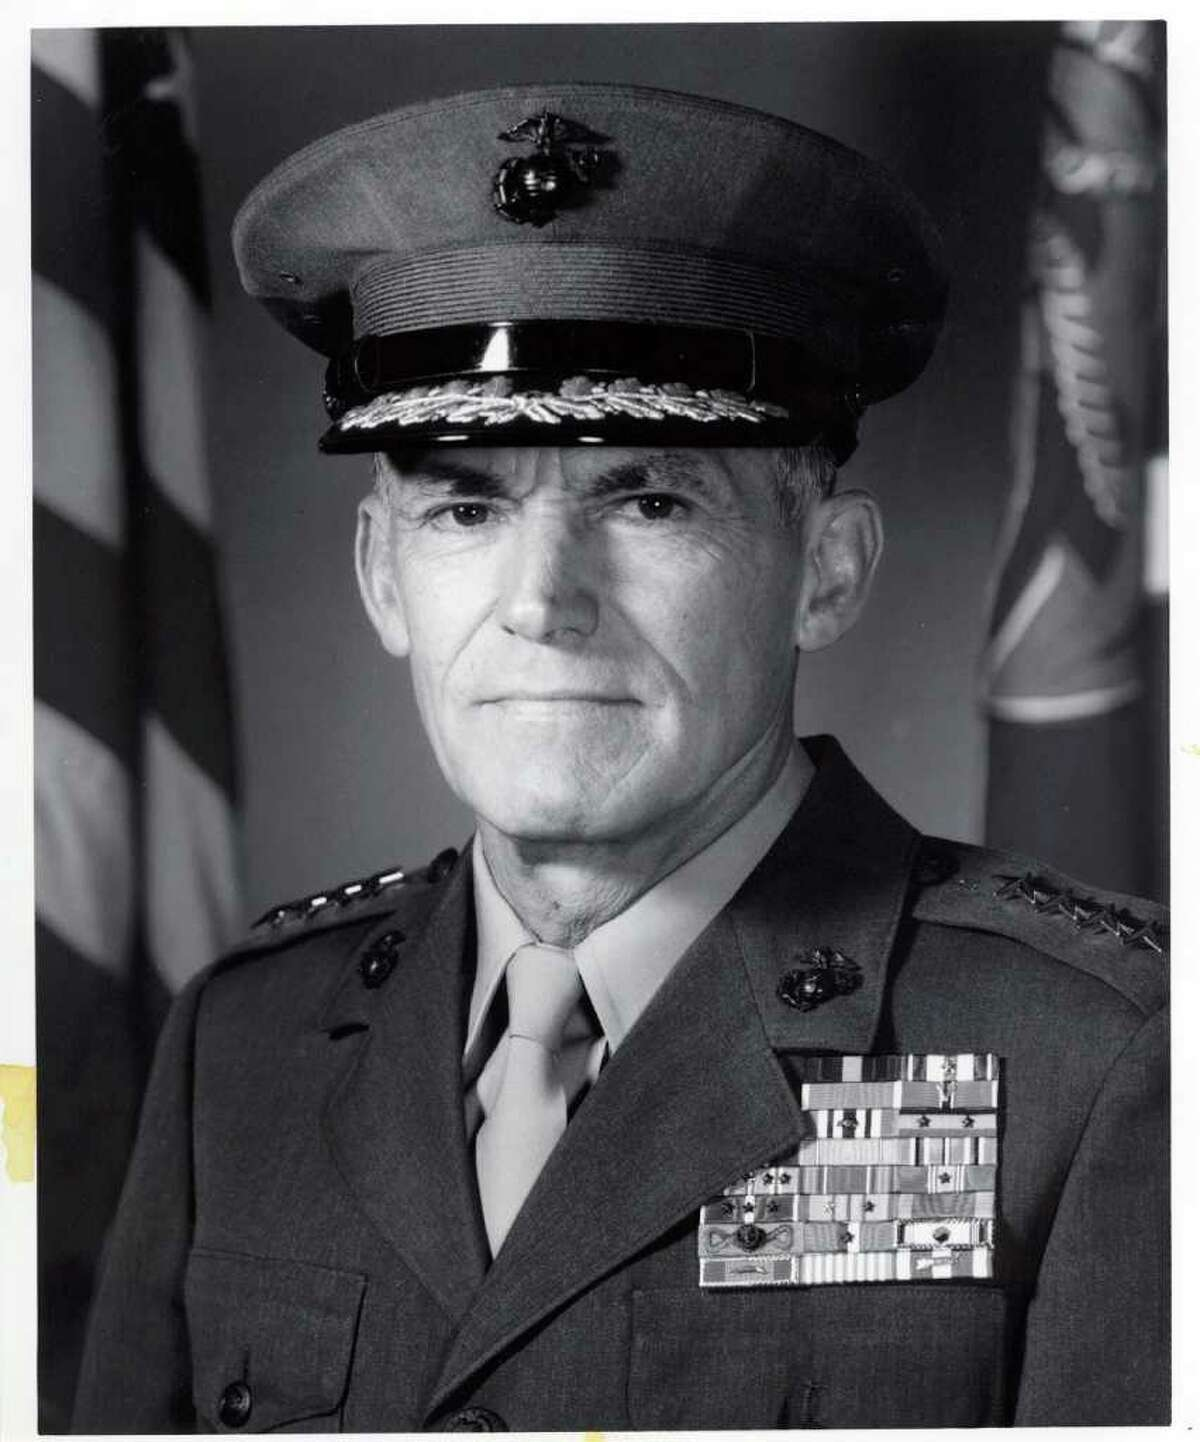 Ansonia, Conn. General Samuel Jaskilka, who served as Assistant Commandant of the Marine Corps, died on Jan. 15, 2012. He retired from the Corps in 1978 after 36 years of service. He was buried Thursday, Jan. 26 in Arlington National Cemetery.